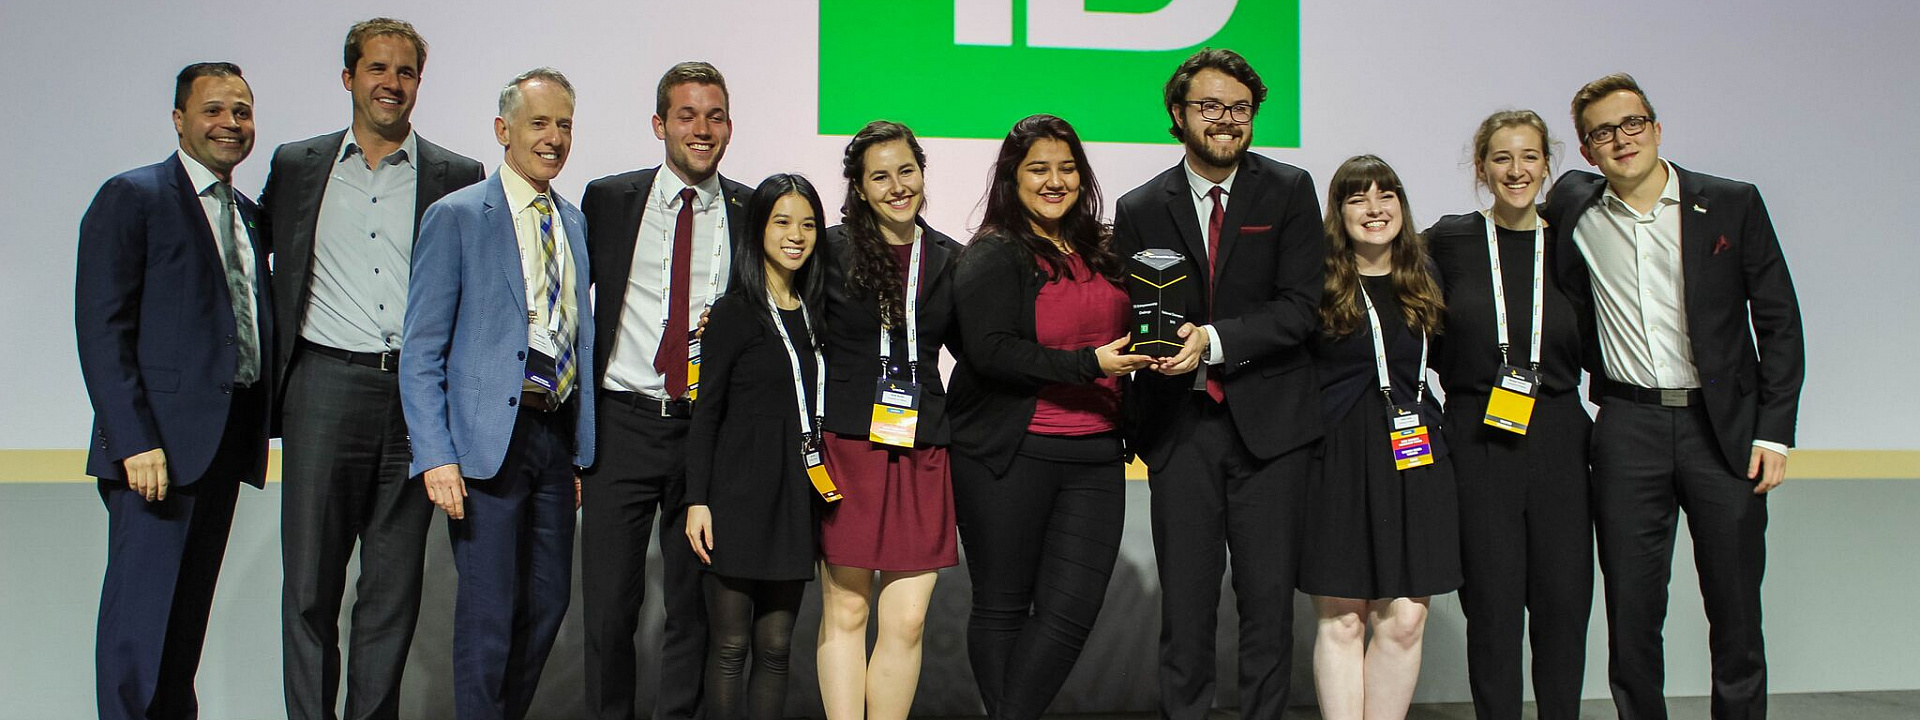 Enactus uOttawa named Entrepreneurship National Champion for the Growcer